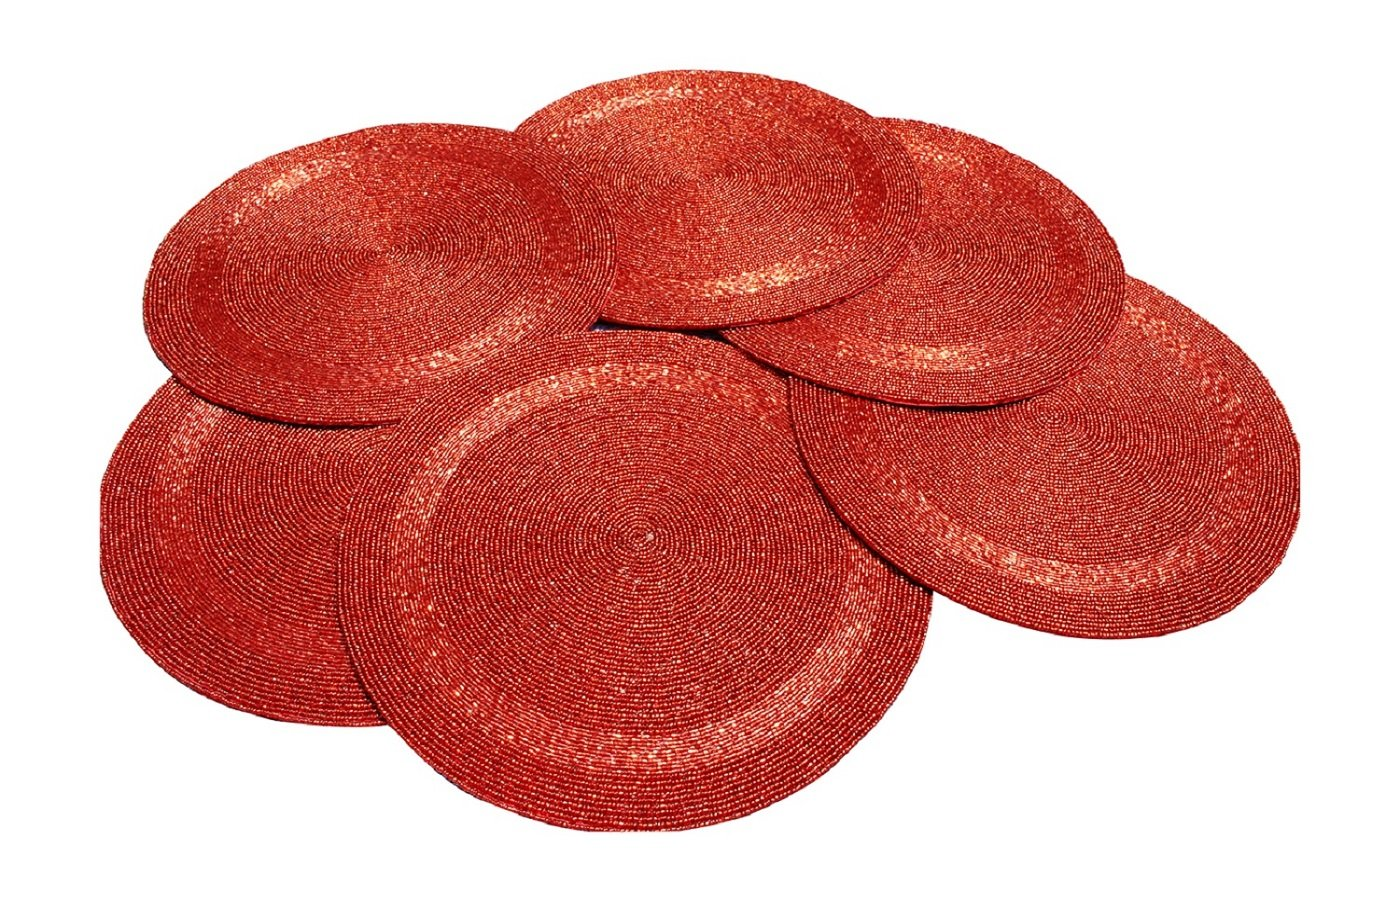 Red Tabletop Decor Glass Beads Braided Round Placemats ,Set of 6